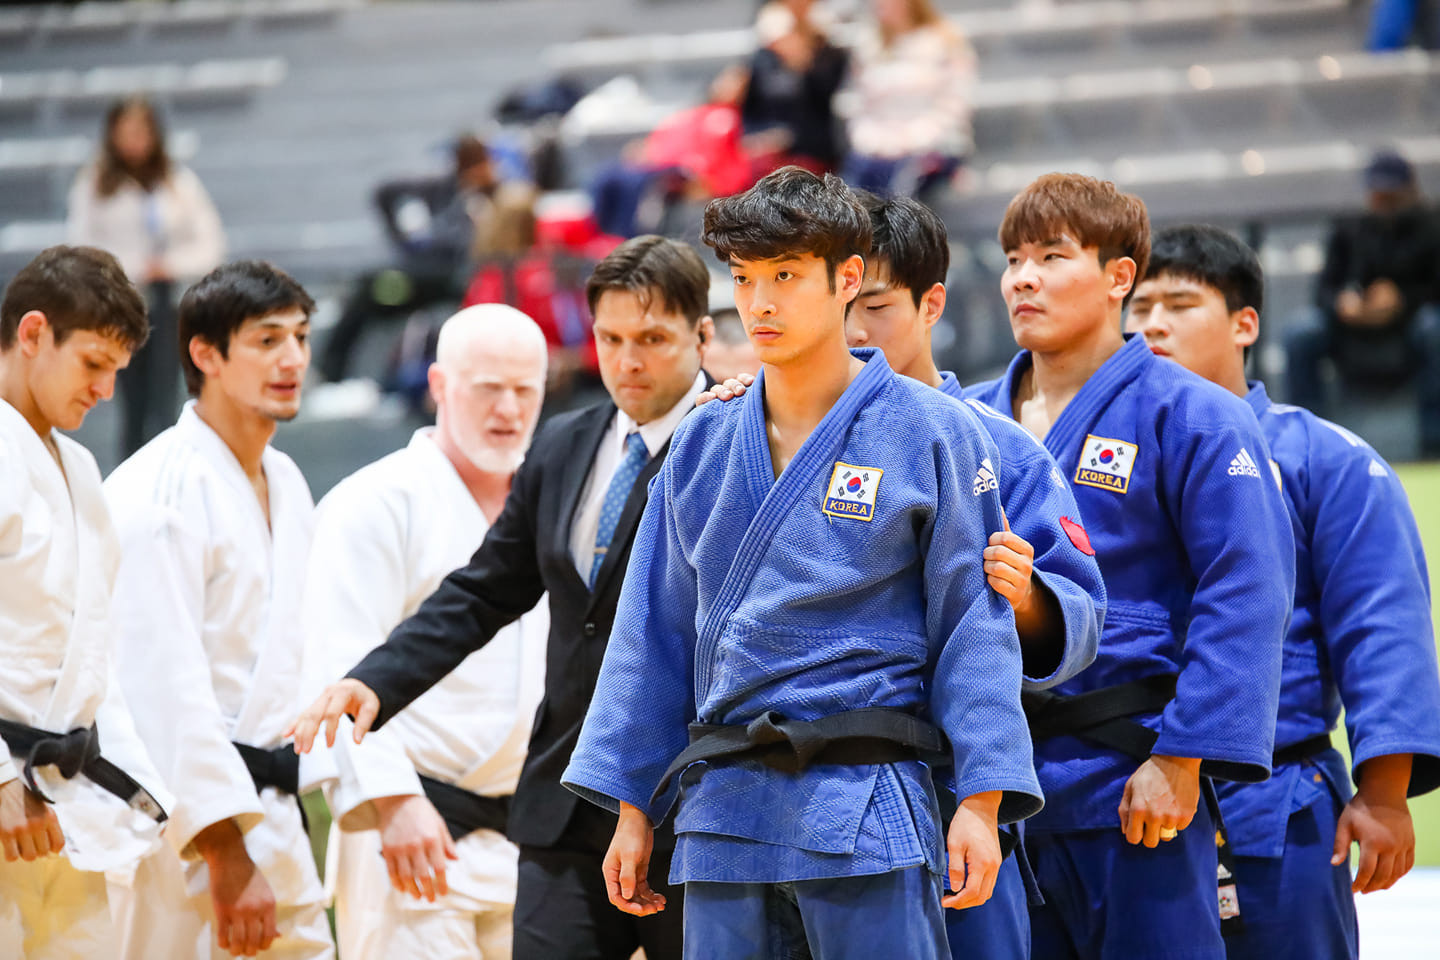 South Korea win both team golds on final day of IBSA Judo World Championships